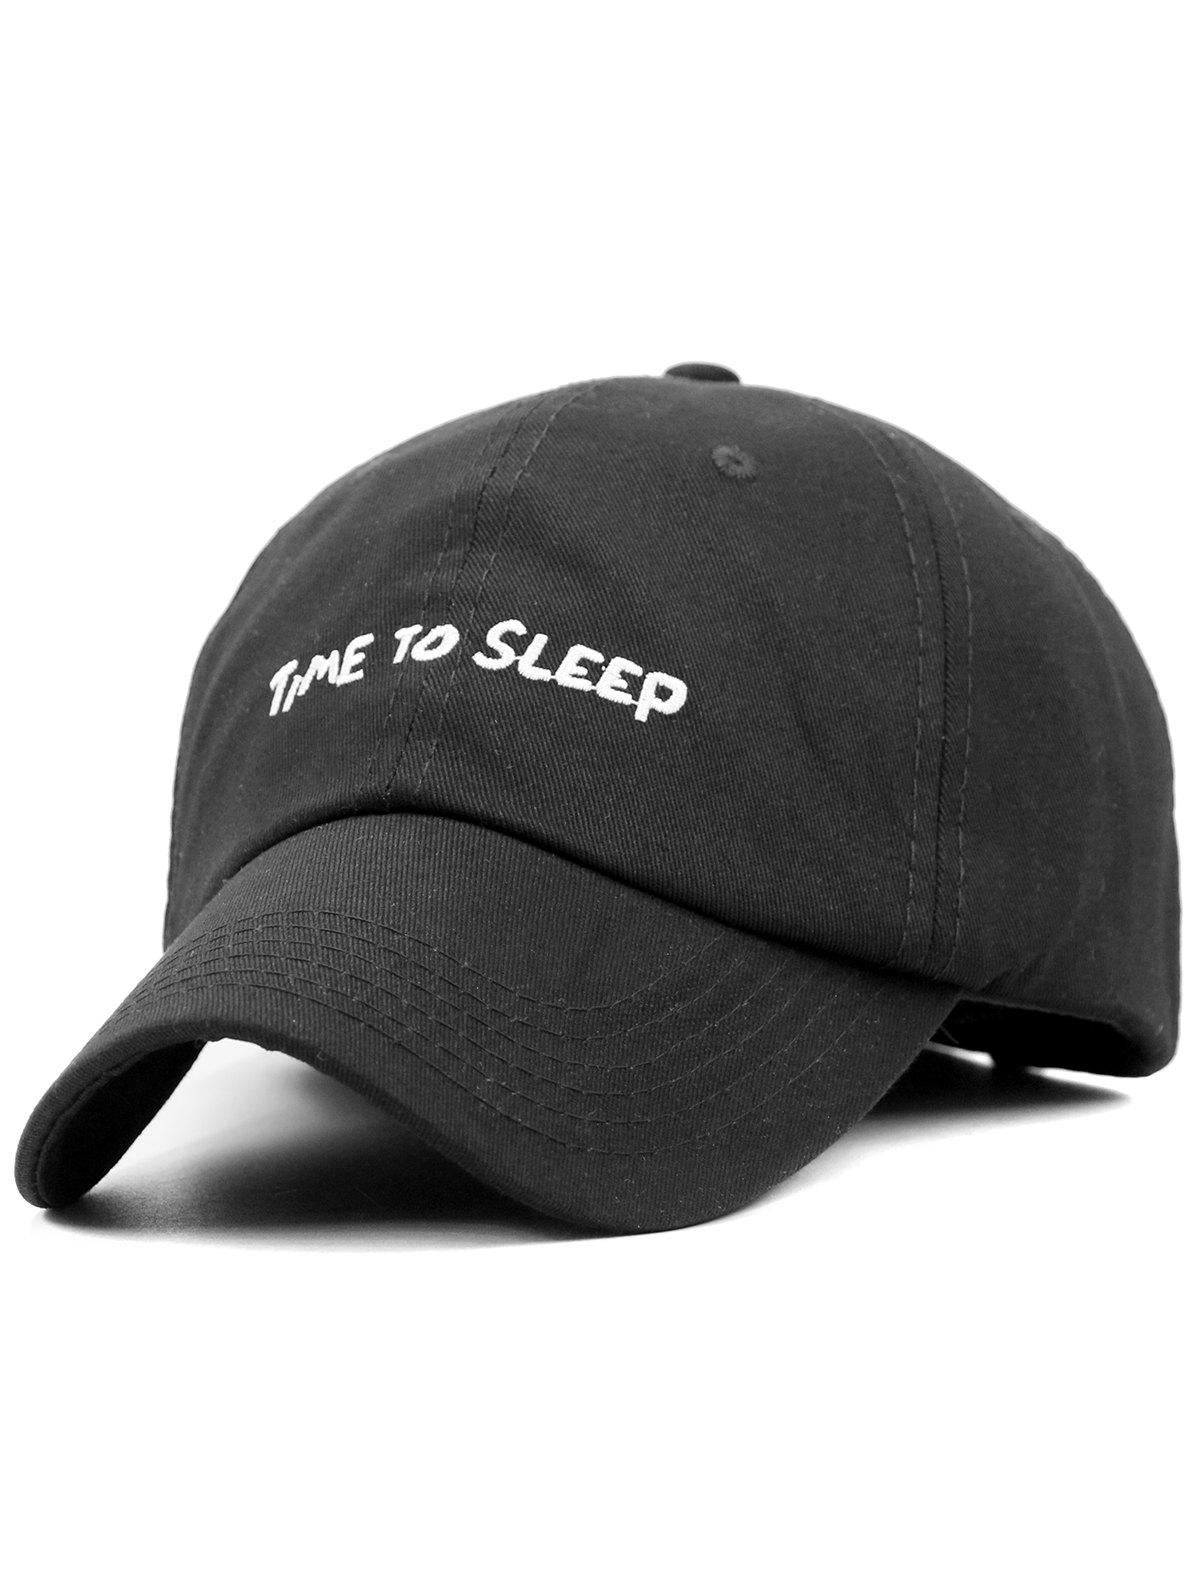 Outfit Time To Sleep Embroidery Adjustable Graphic Hat